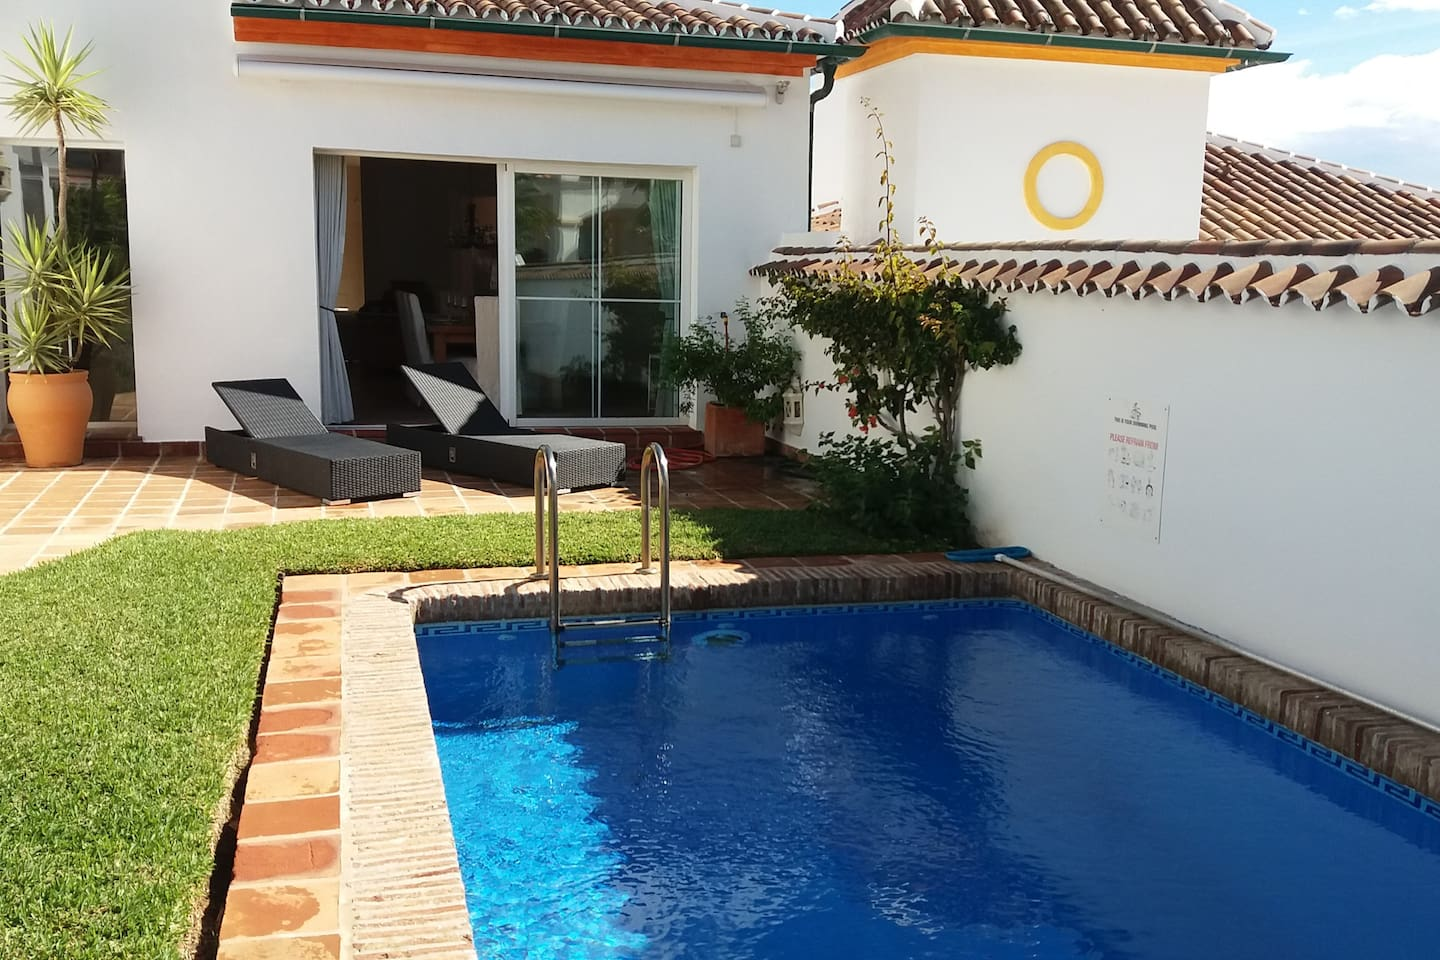 There is a private garden with its own pool.